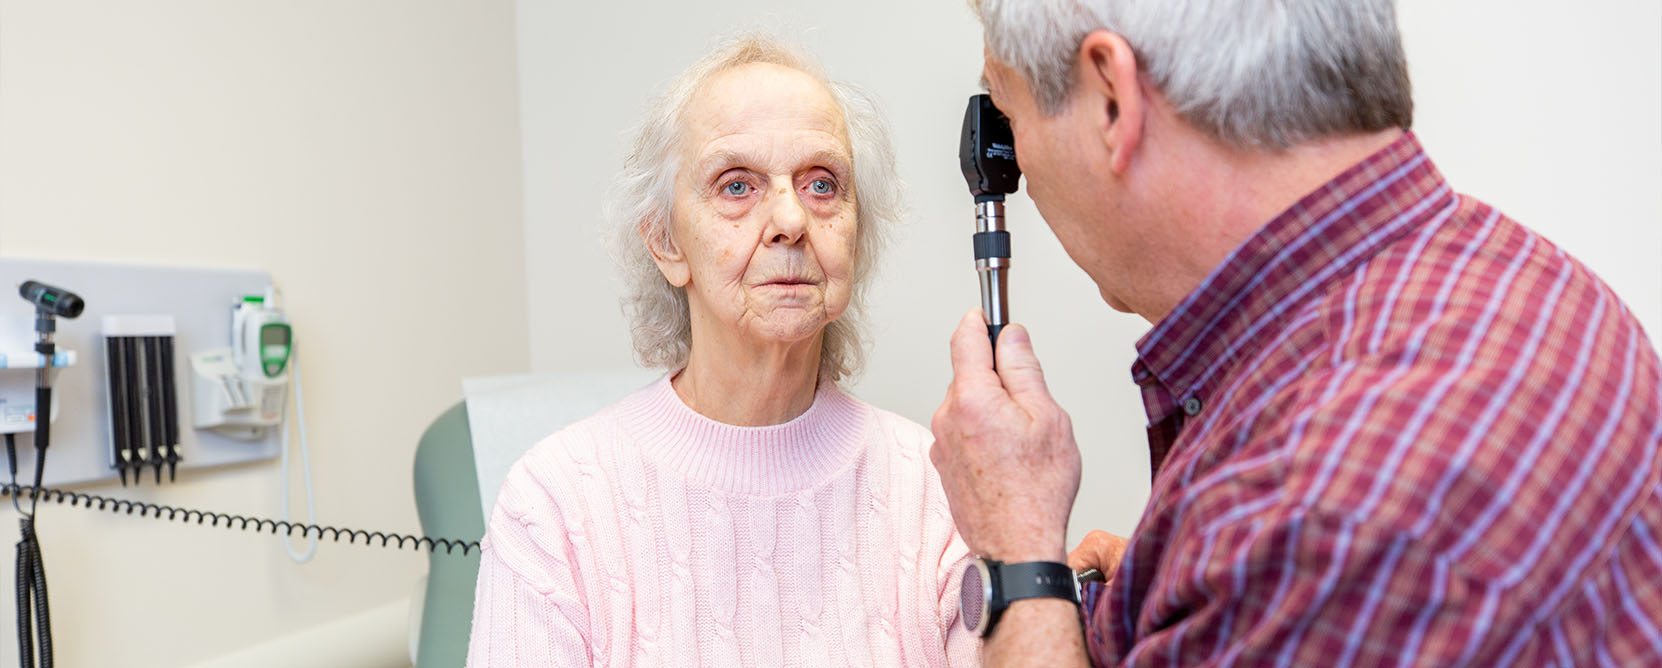 Older adult patient has her eyesight checked by a doctor